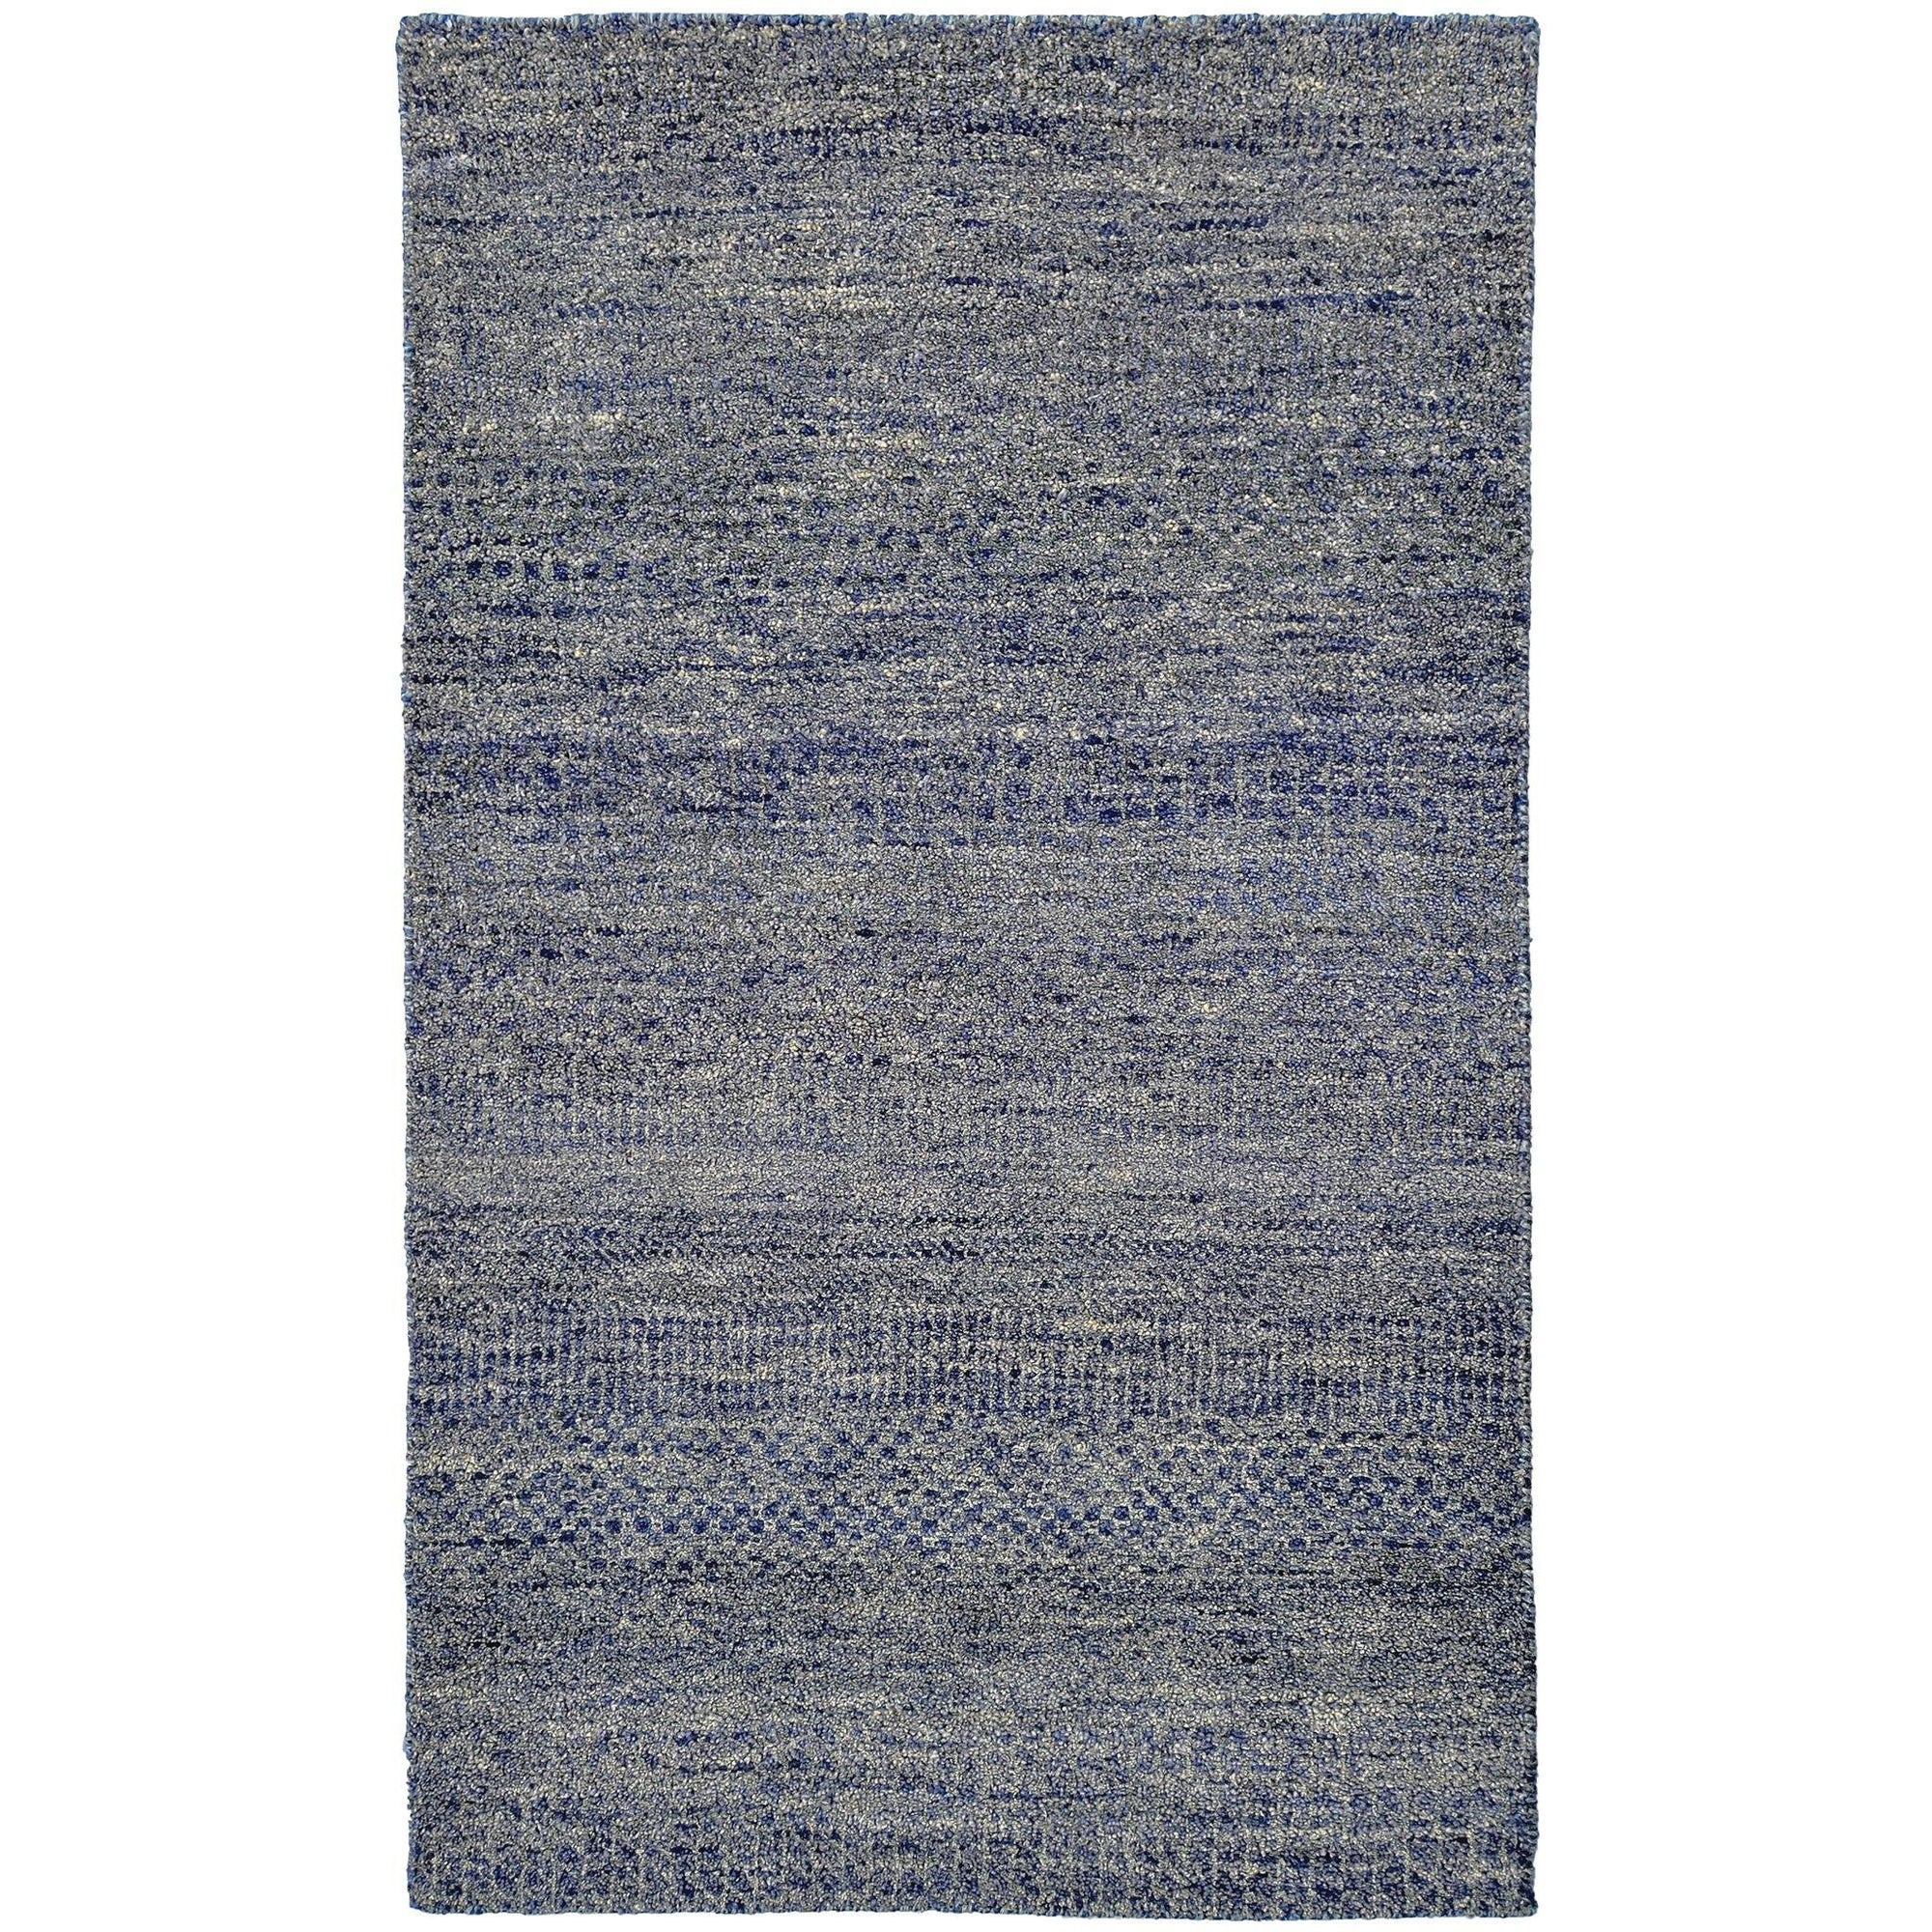 Contemporary Hand-knotted Modern Small Rug 62cm x 102cm Persian-Rug | House-of-Haghi | NewMarket | Auckland | NZ | Handmade Persian Rugs | Hand Knotted Persian Rugs